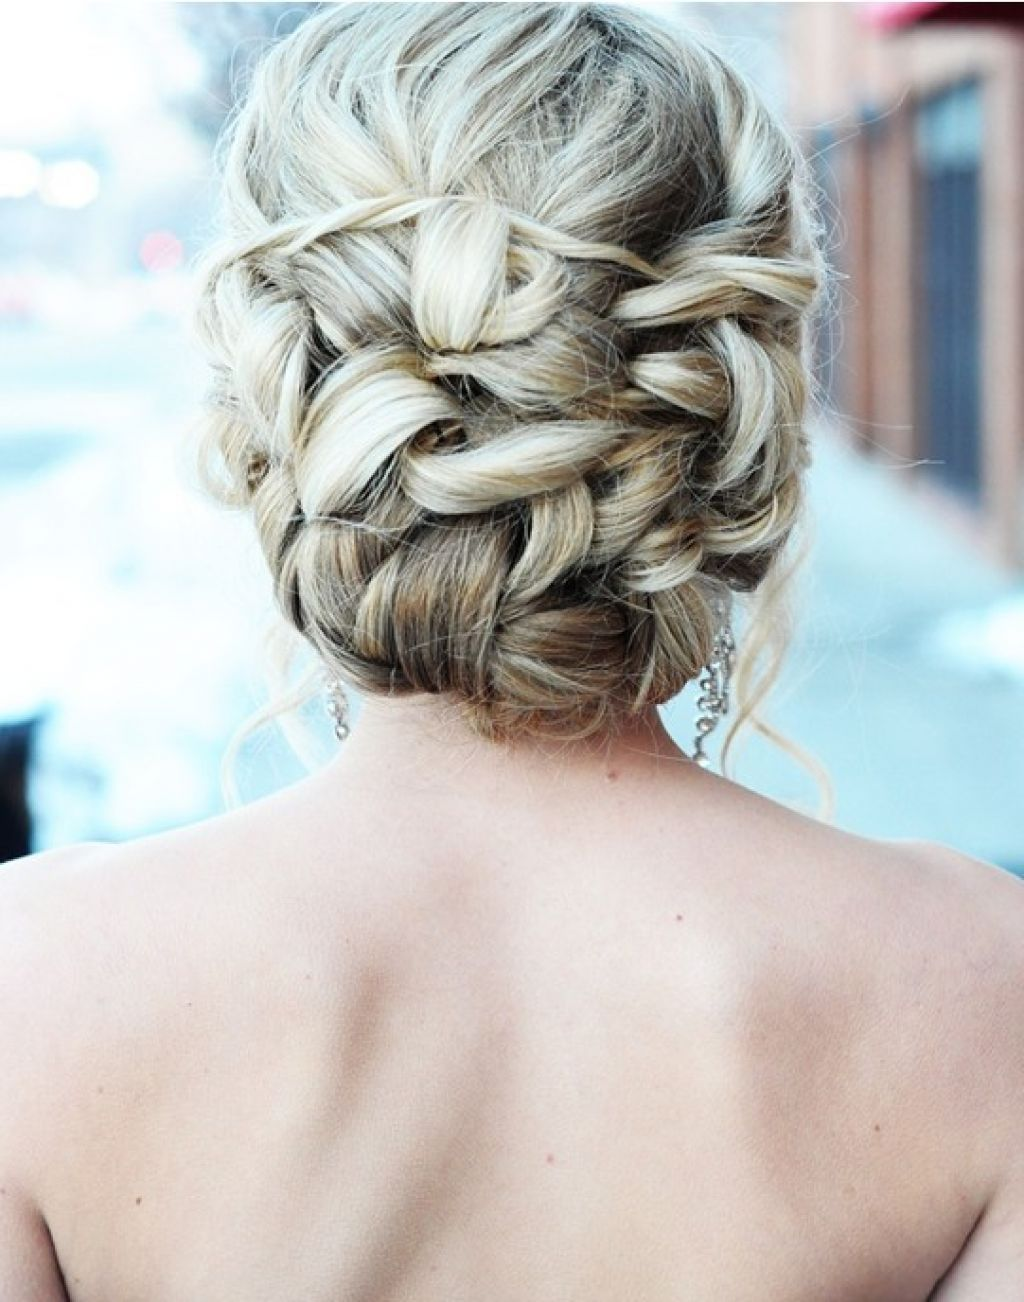 Updo hairstyles formal updo hairstyles for prom formal updo long